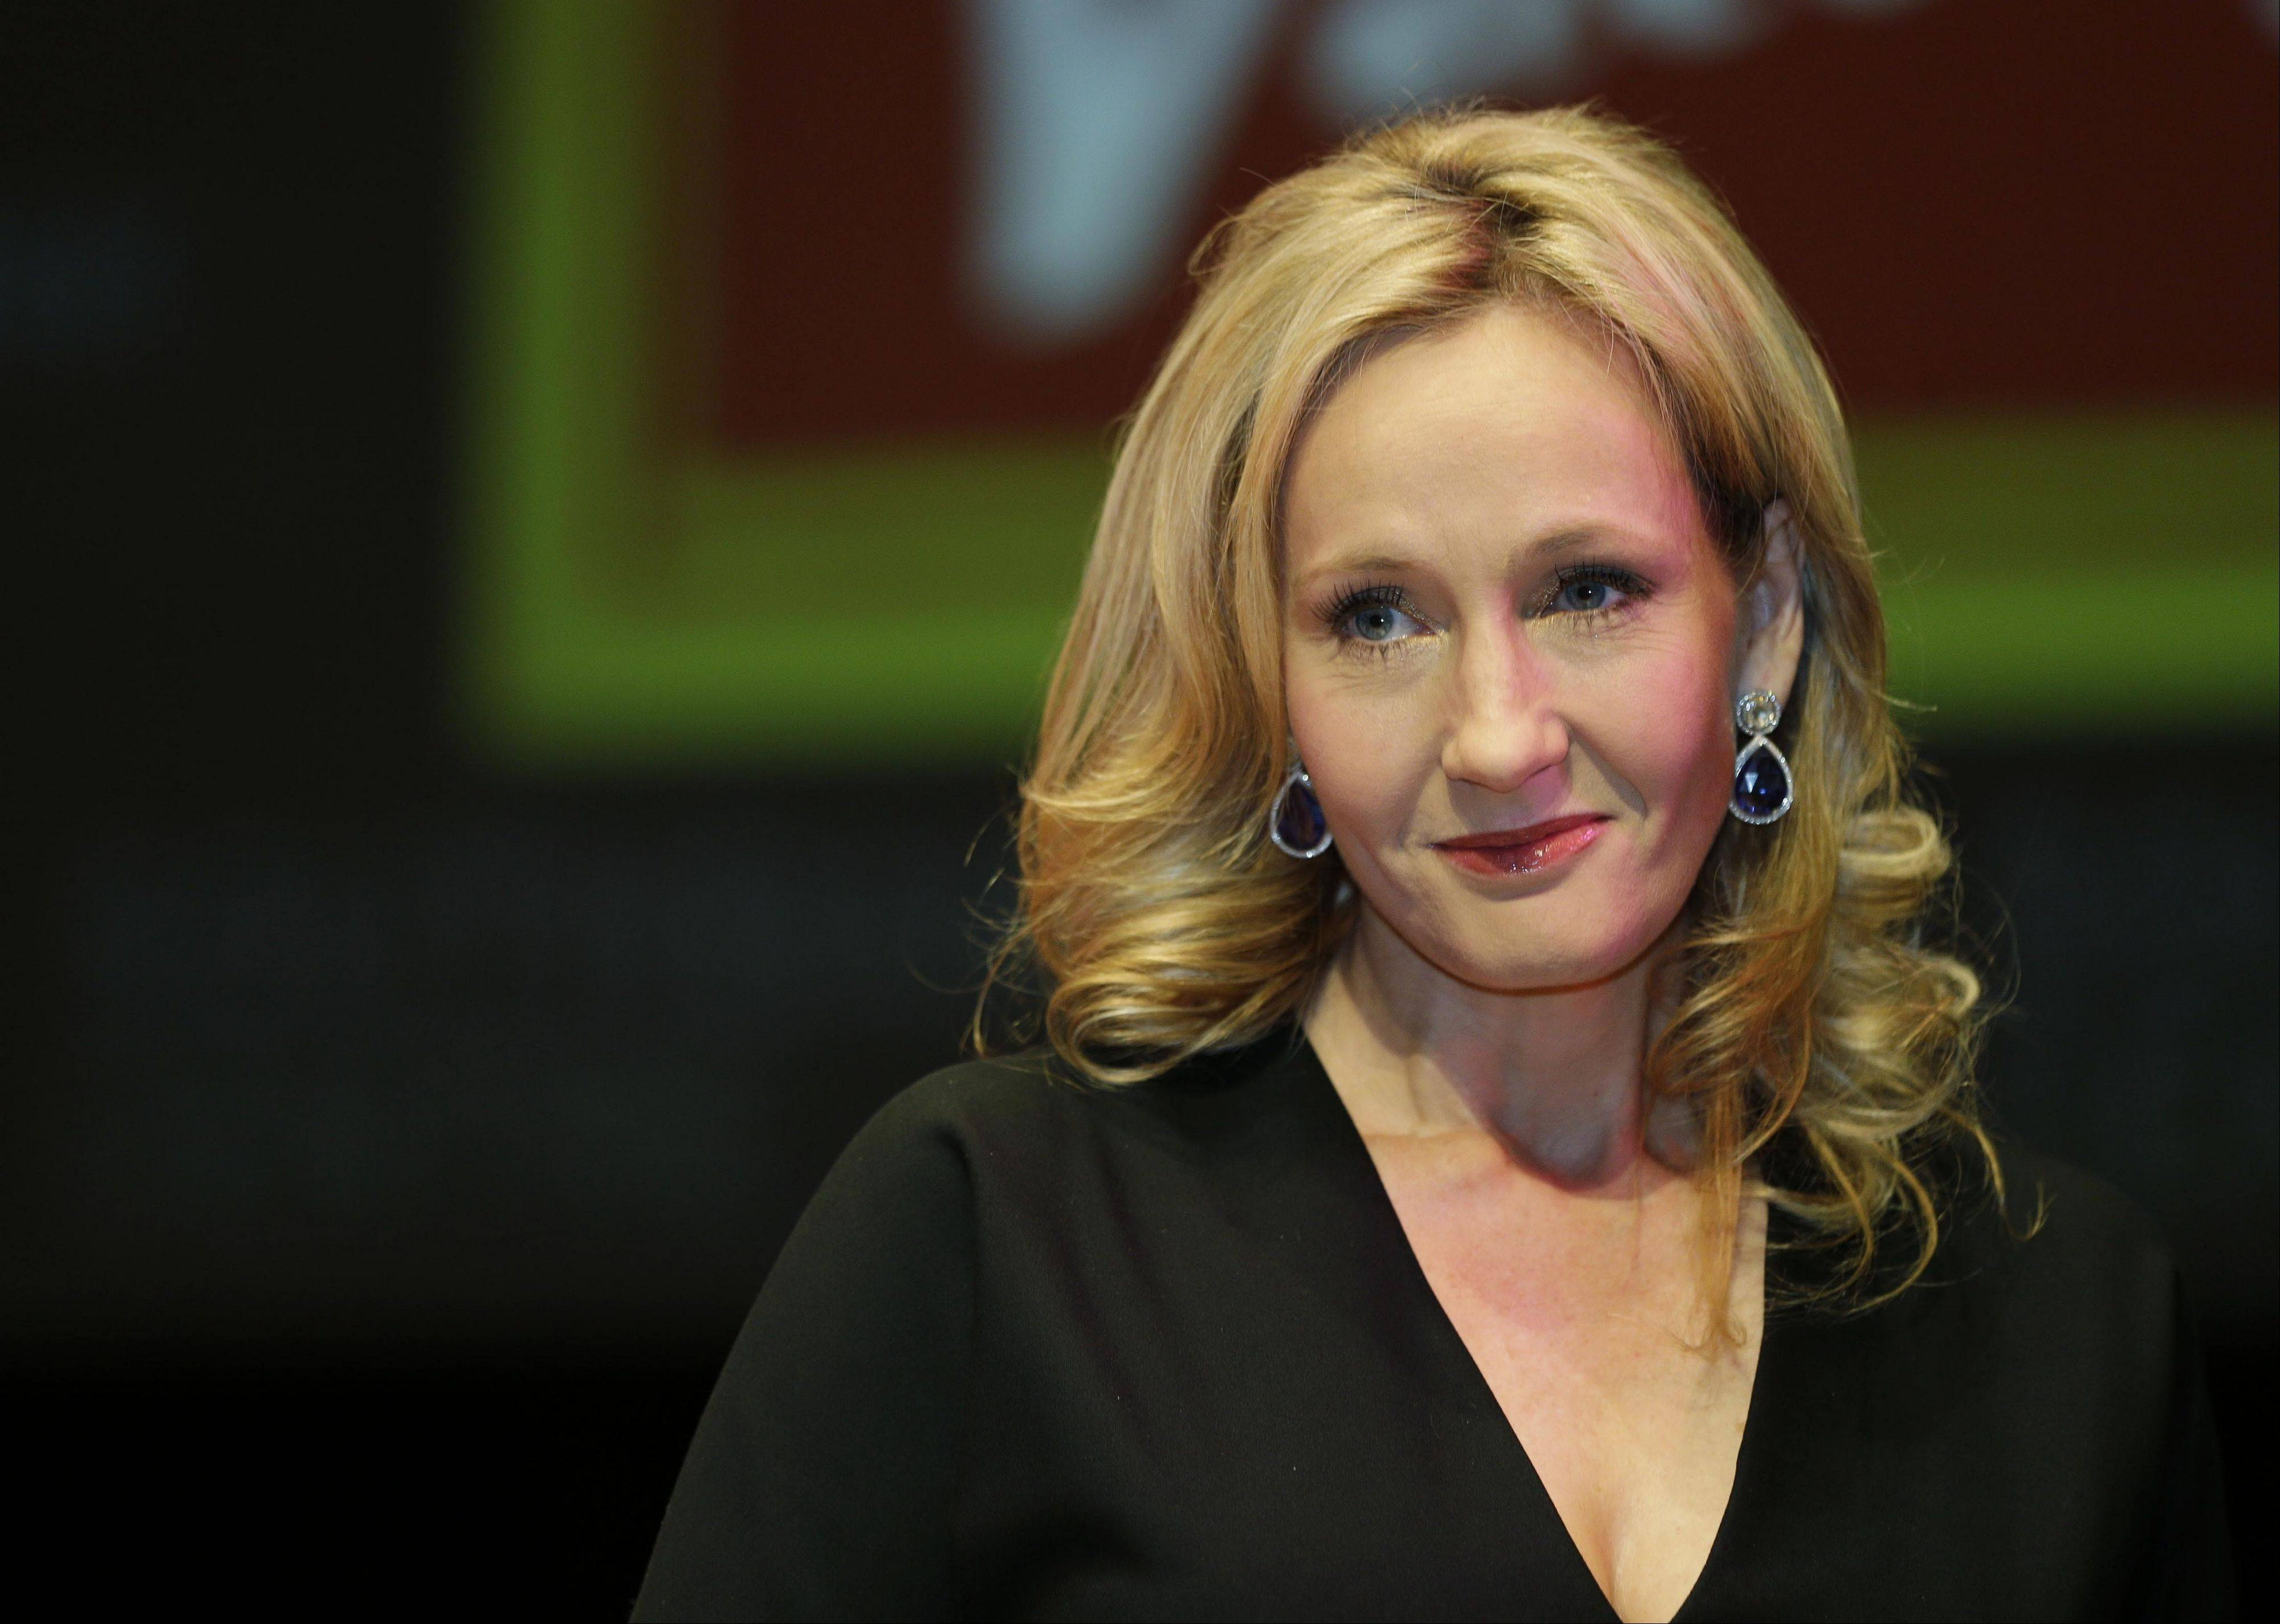 J.K. Rowling�s world of wizardry is coming back to the big screen � but without Harry Potter. Studio Warner Bros. announced Thursday that Rowling will write the screenplay for a movie based on �Fantastic Beasts and Where to Find Them,� her textbook to the magical universe she created in the Potter stories.